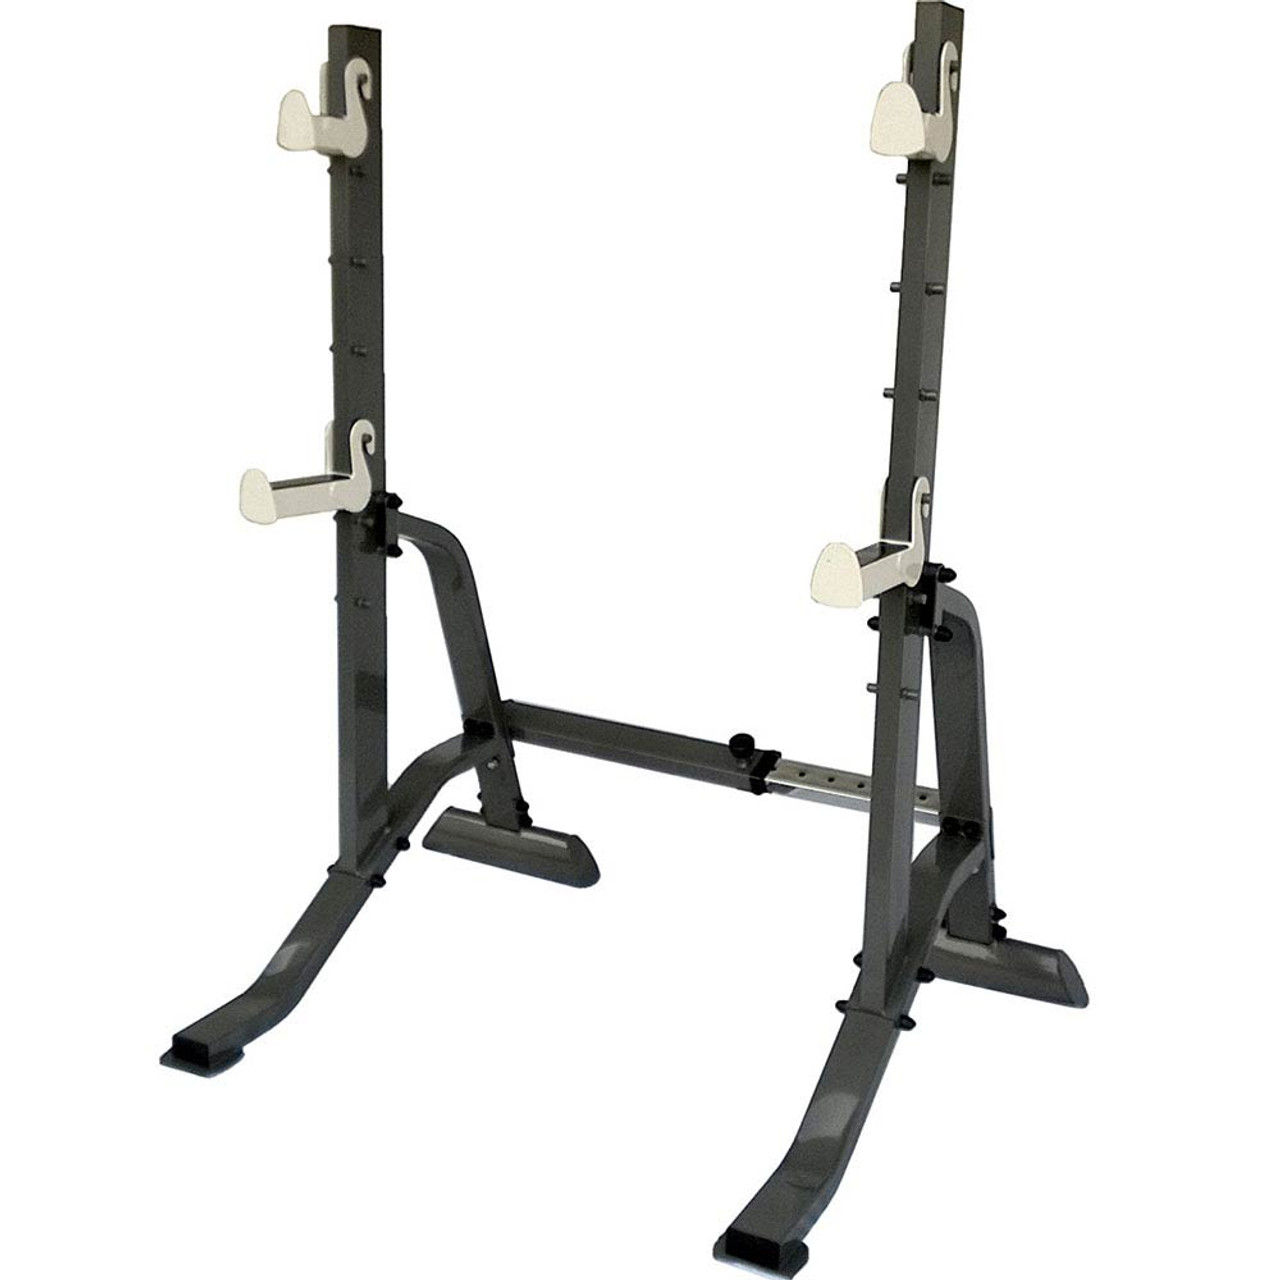 Marcy Adjustable Squat Rack | MWB-70100 Quality Strength Products